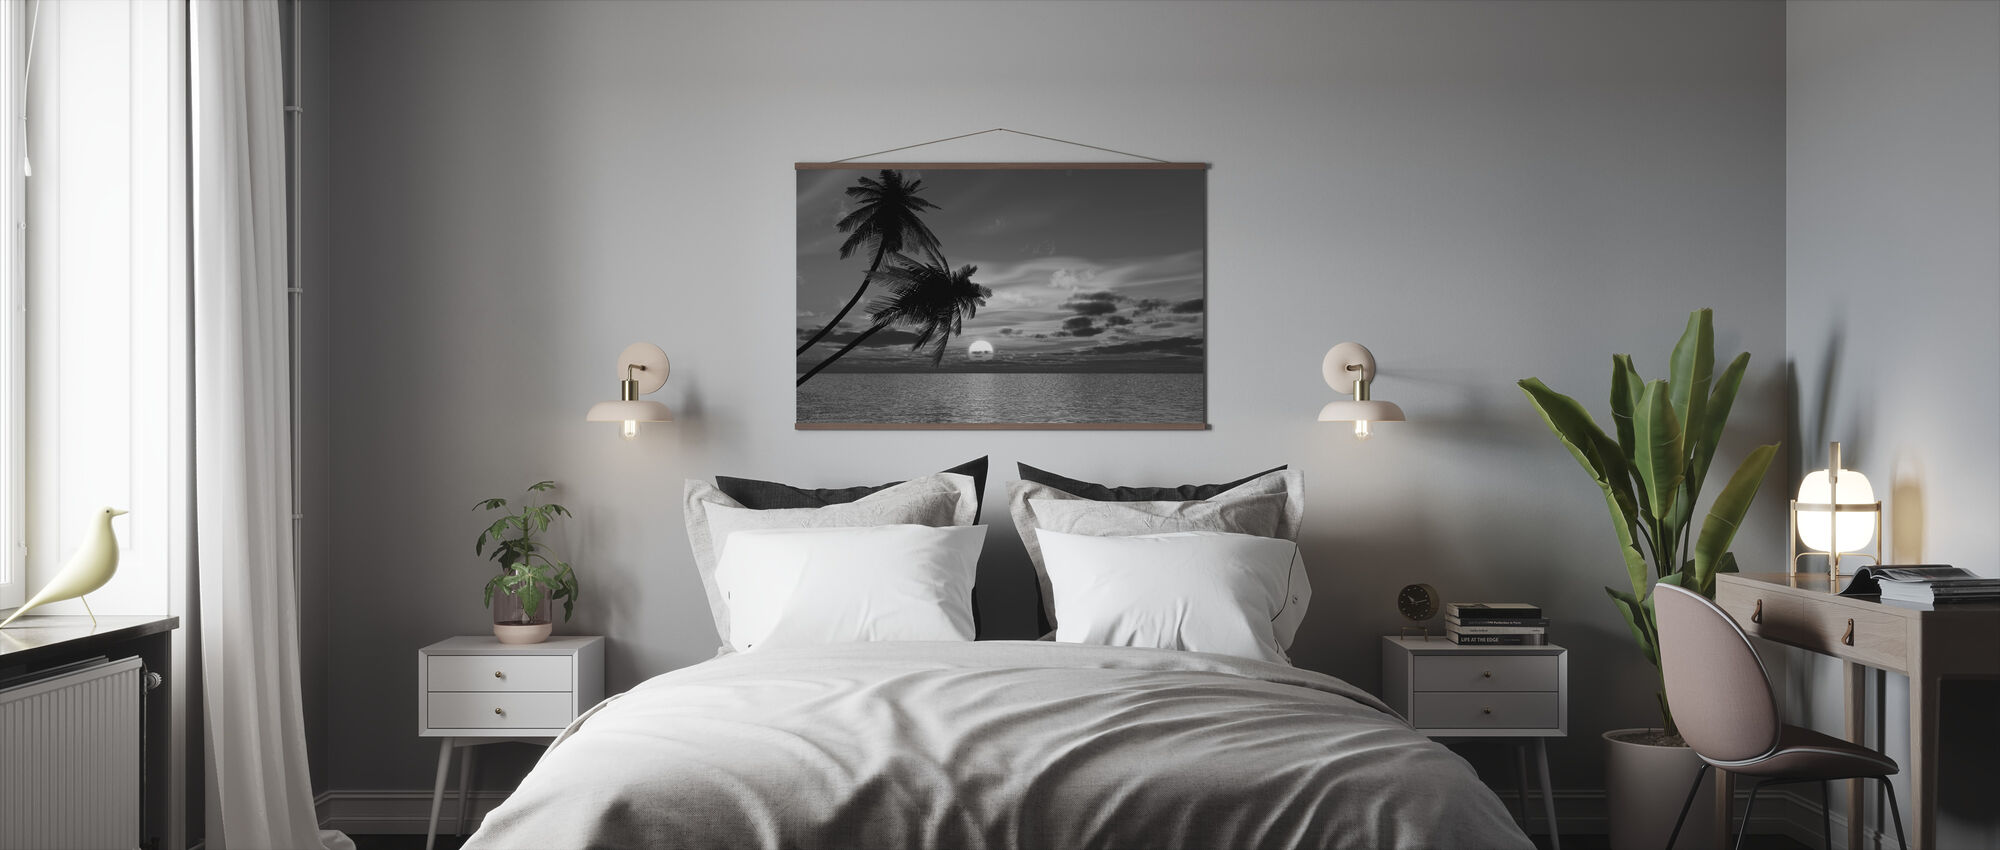 Coconut Palm Sun - Poster - Bedroom